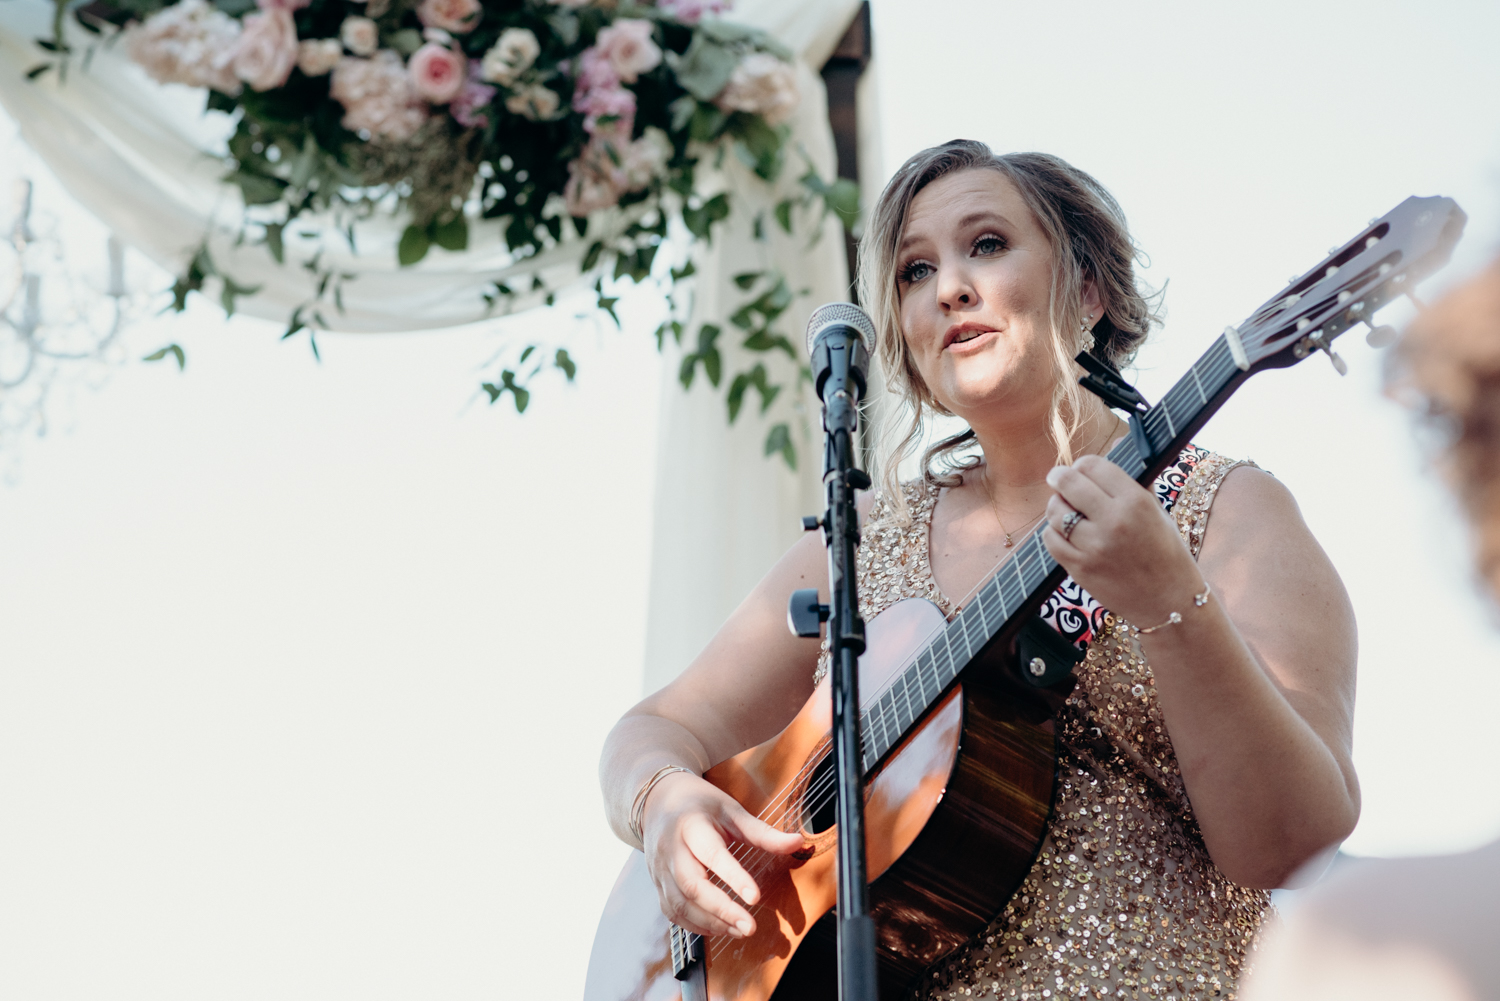 A bridesmaid performs a song during her sisters wedding ceremony at Lansdowne Resort.